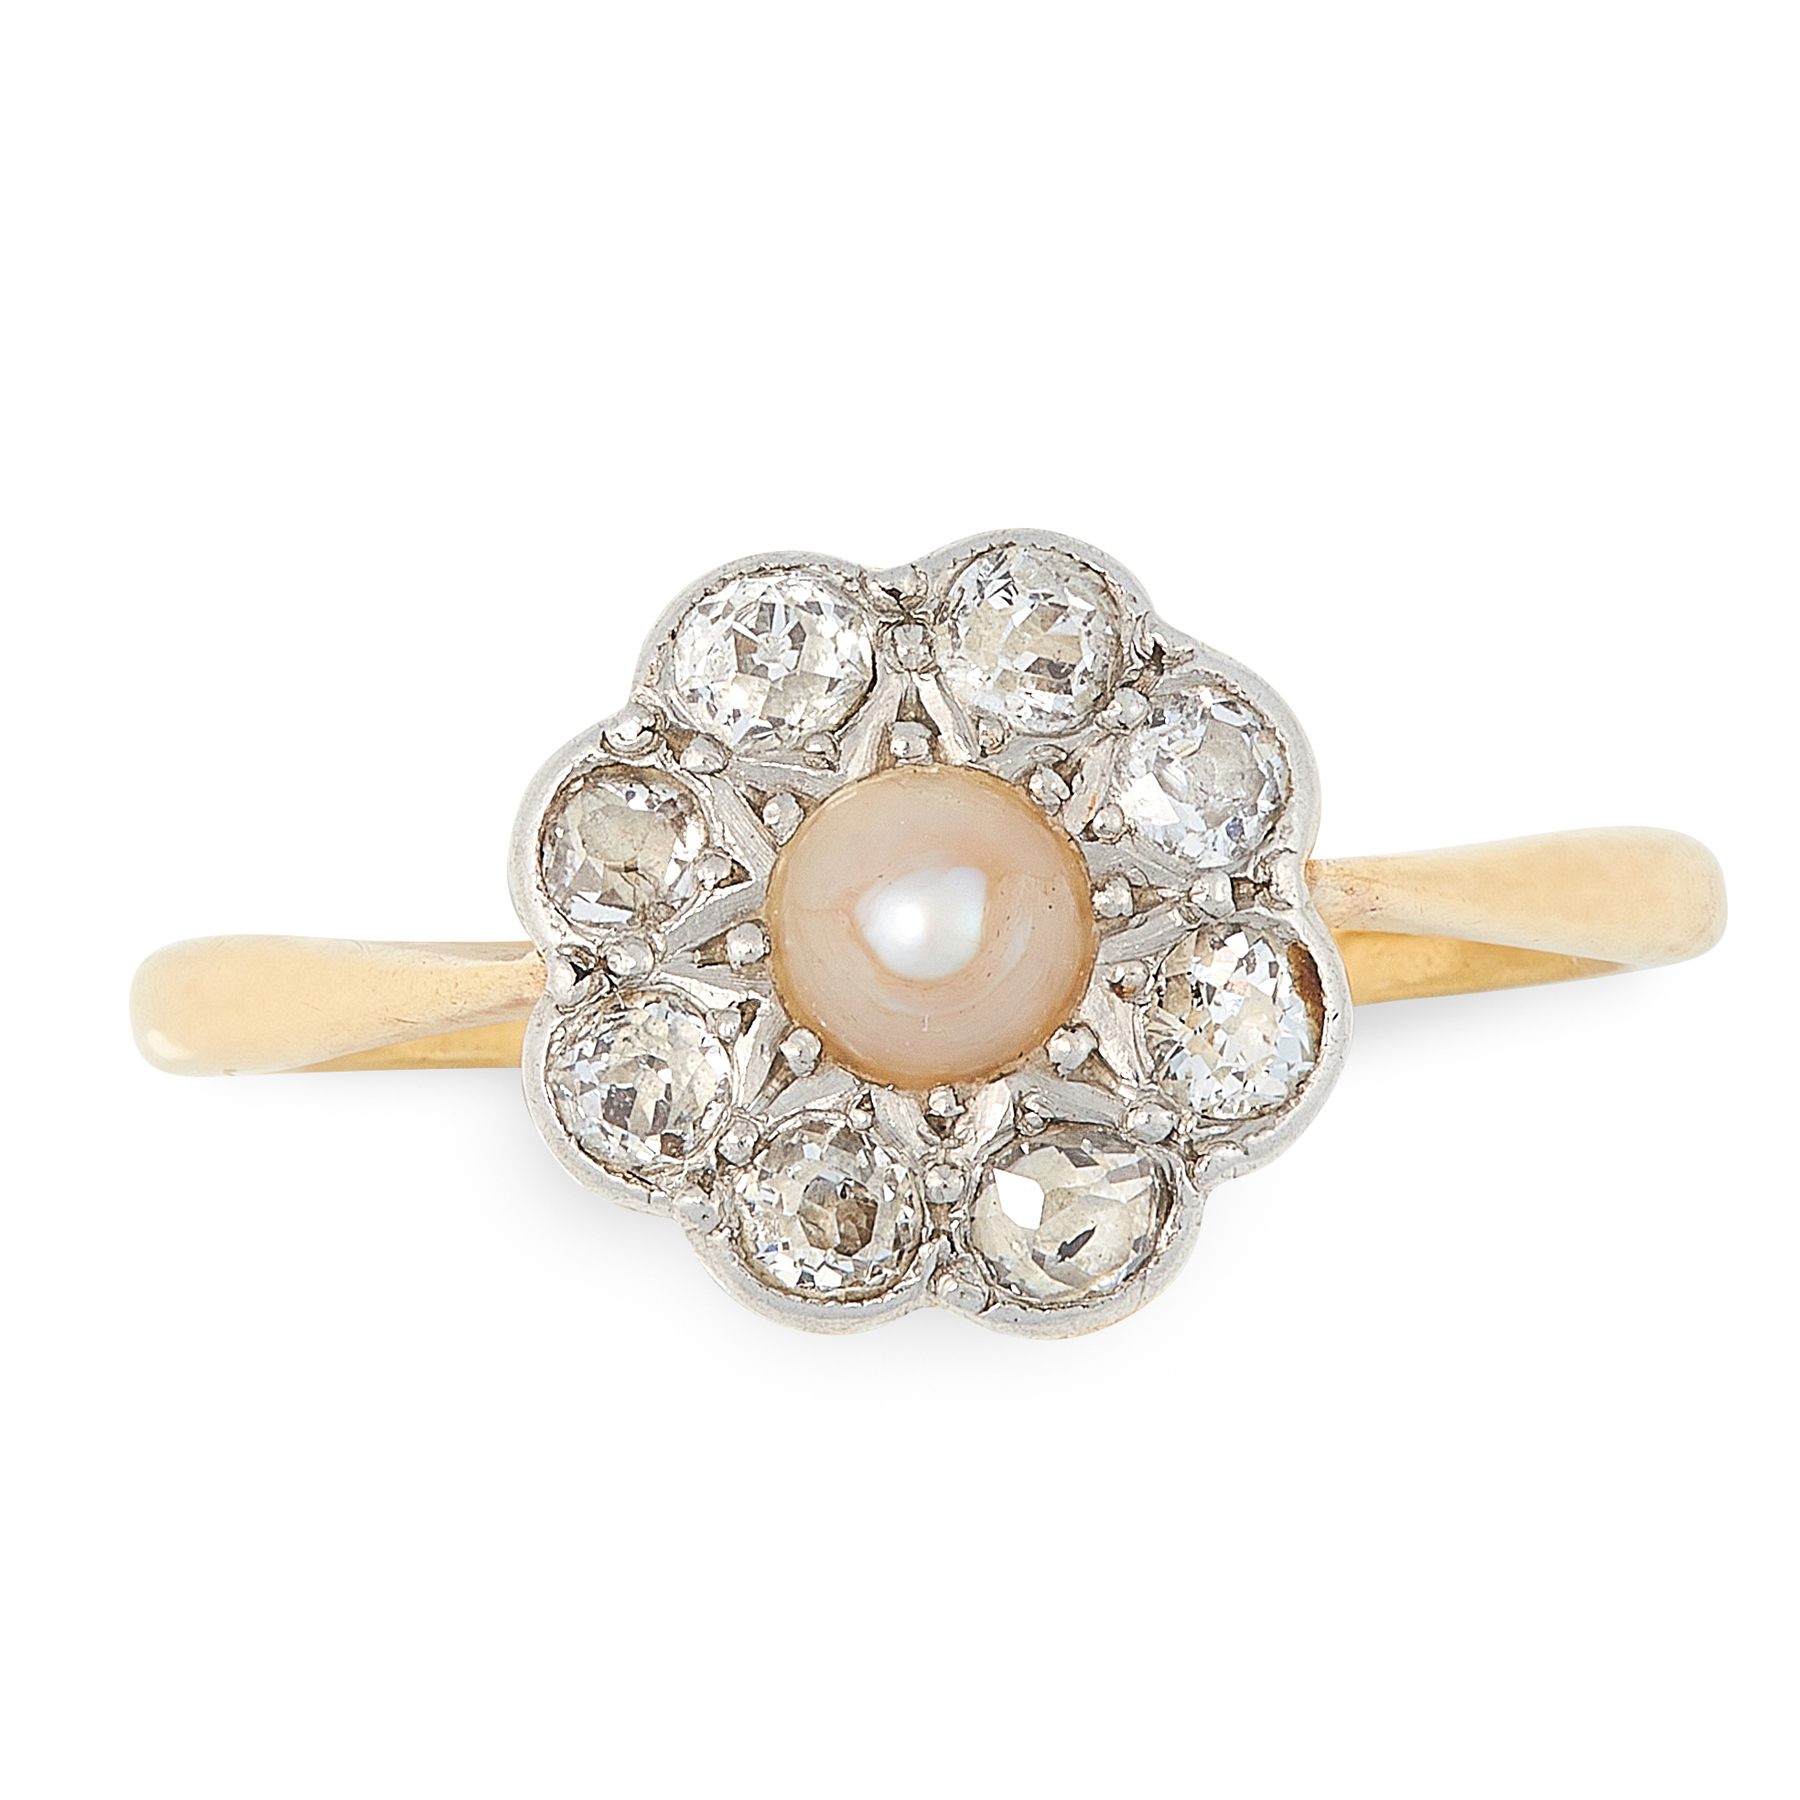 A PEARL AND DIAMOND CLUSTER RING in 18ct yellow gold, set with a pearl within a border of eight